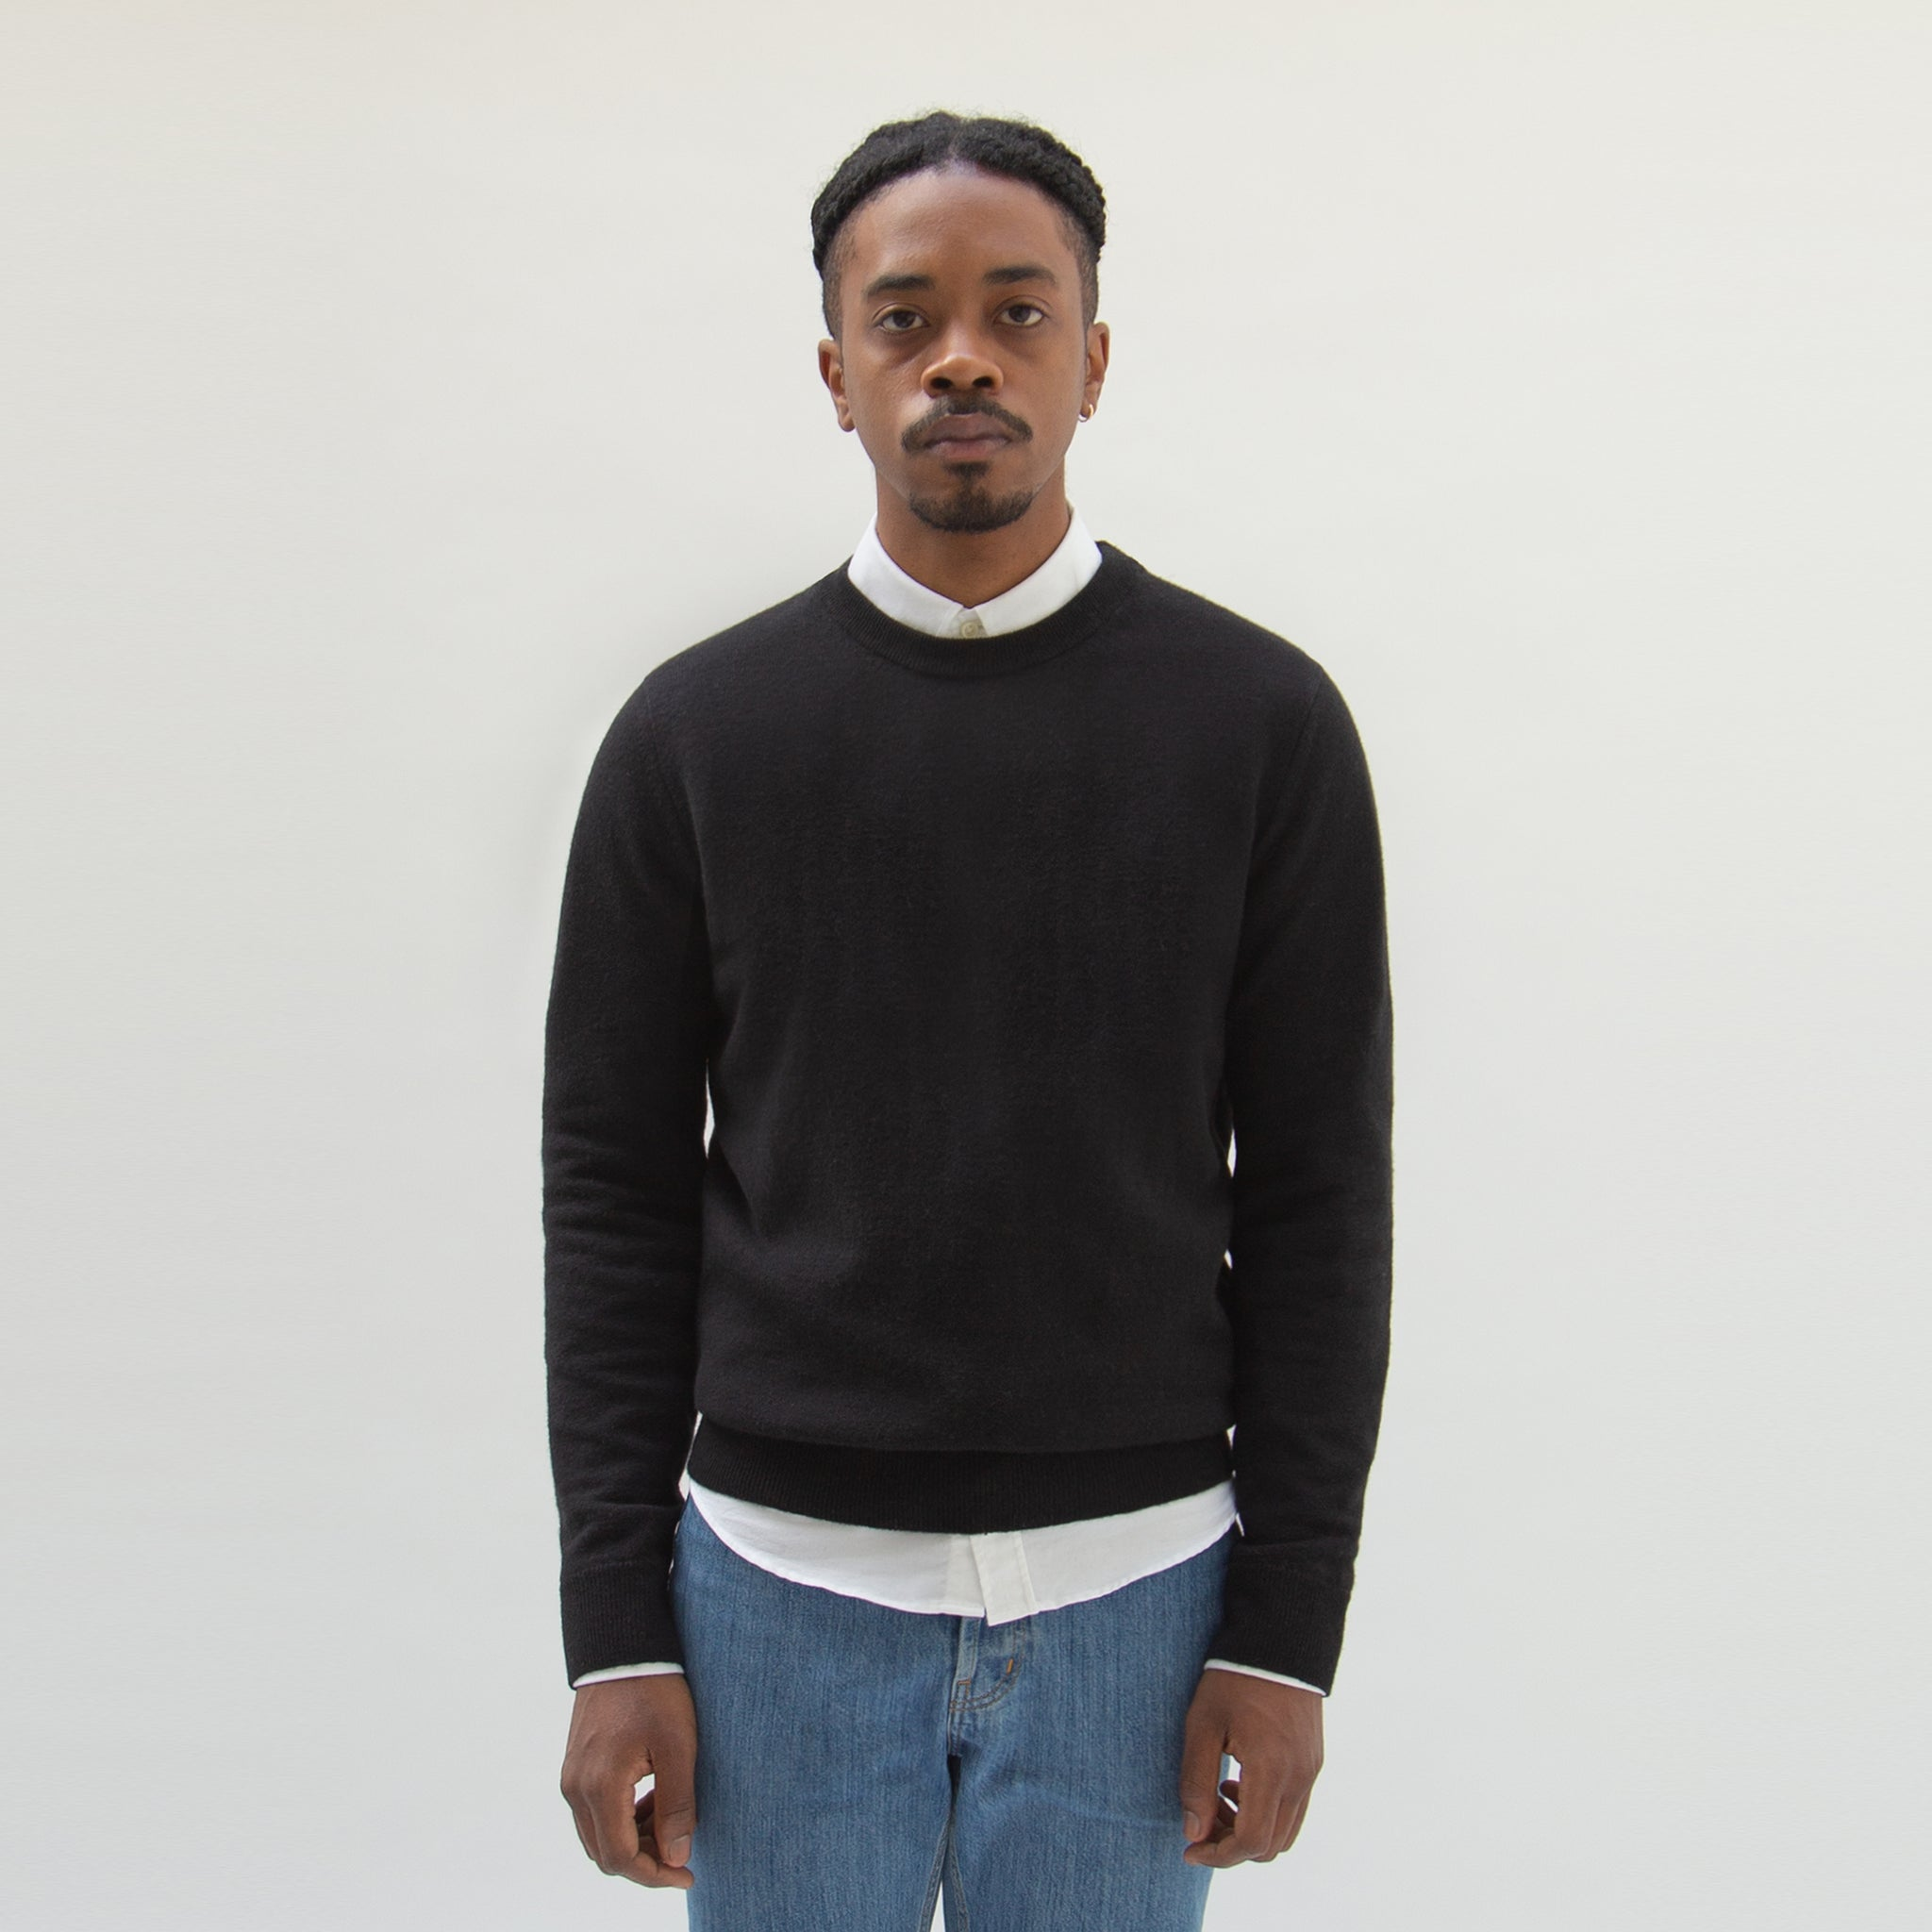 Lambswool Sweater in Black made from organic Wool - Men Front